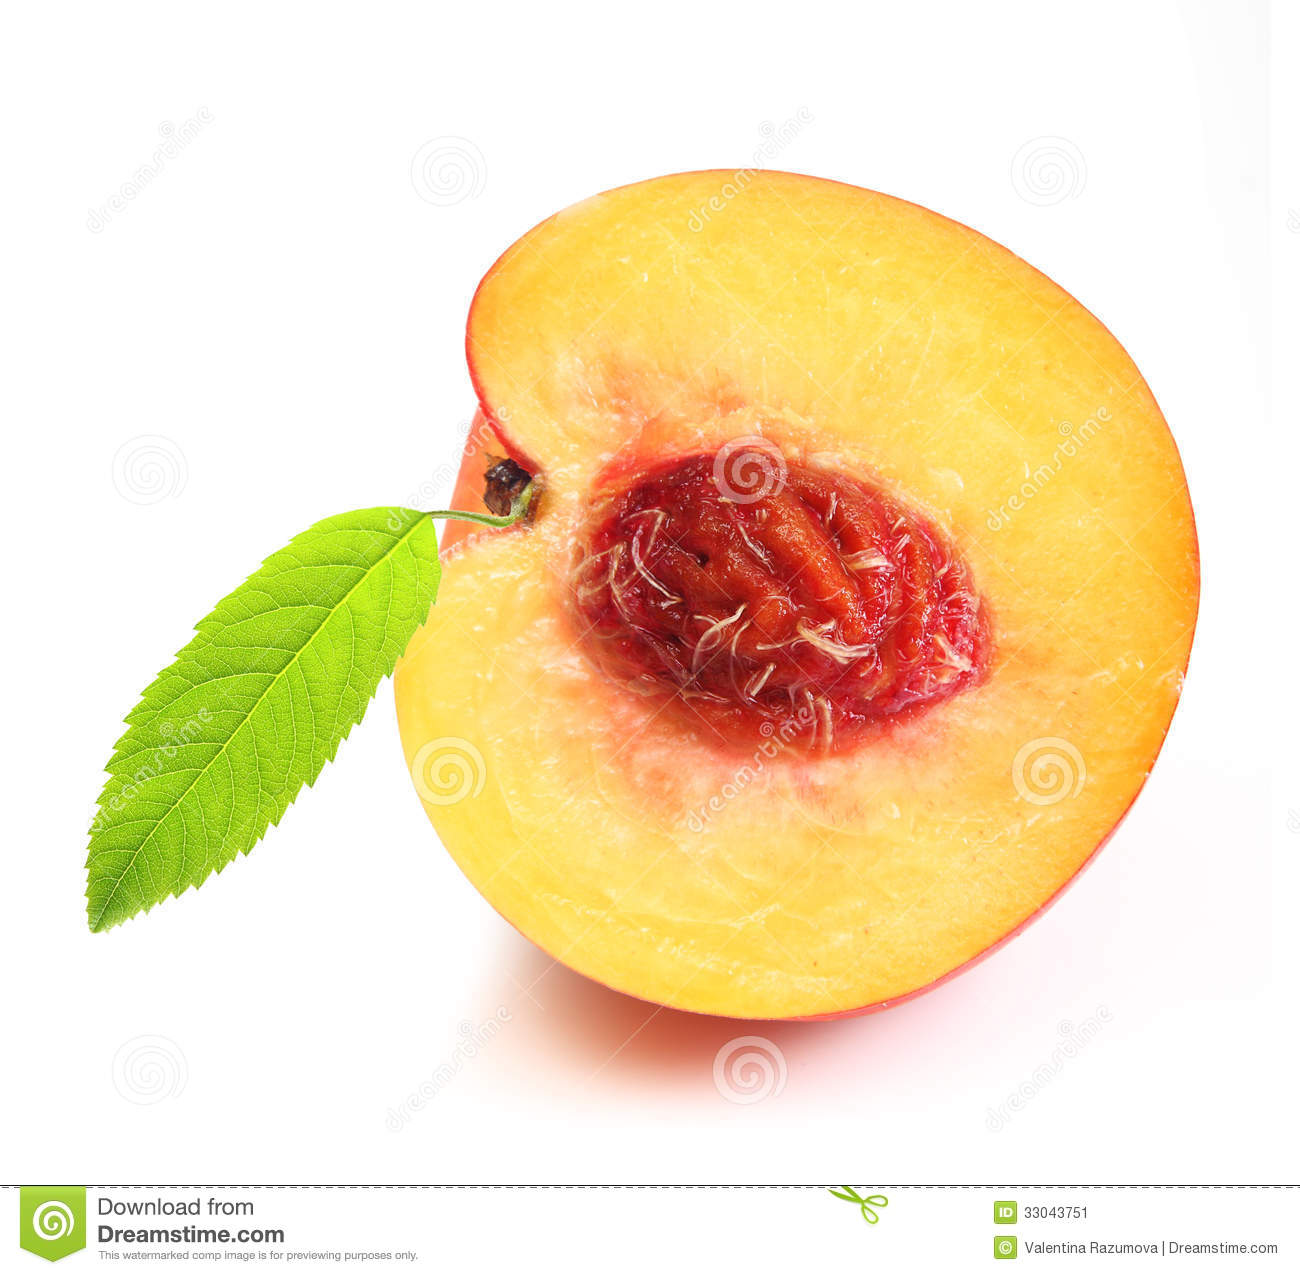 Peach Slice Stock Image   Image  33043751